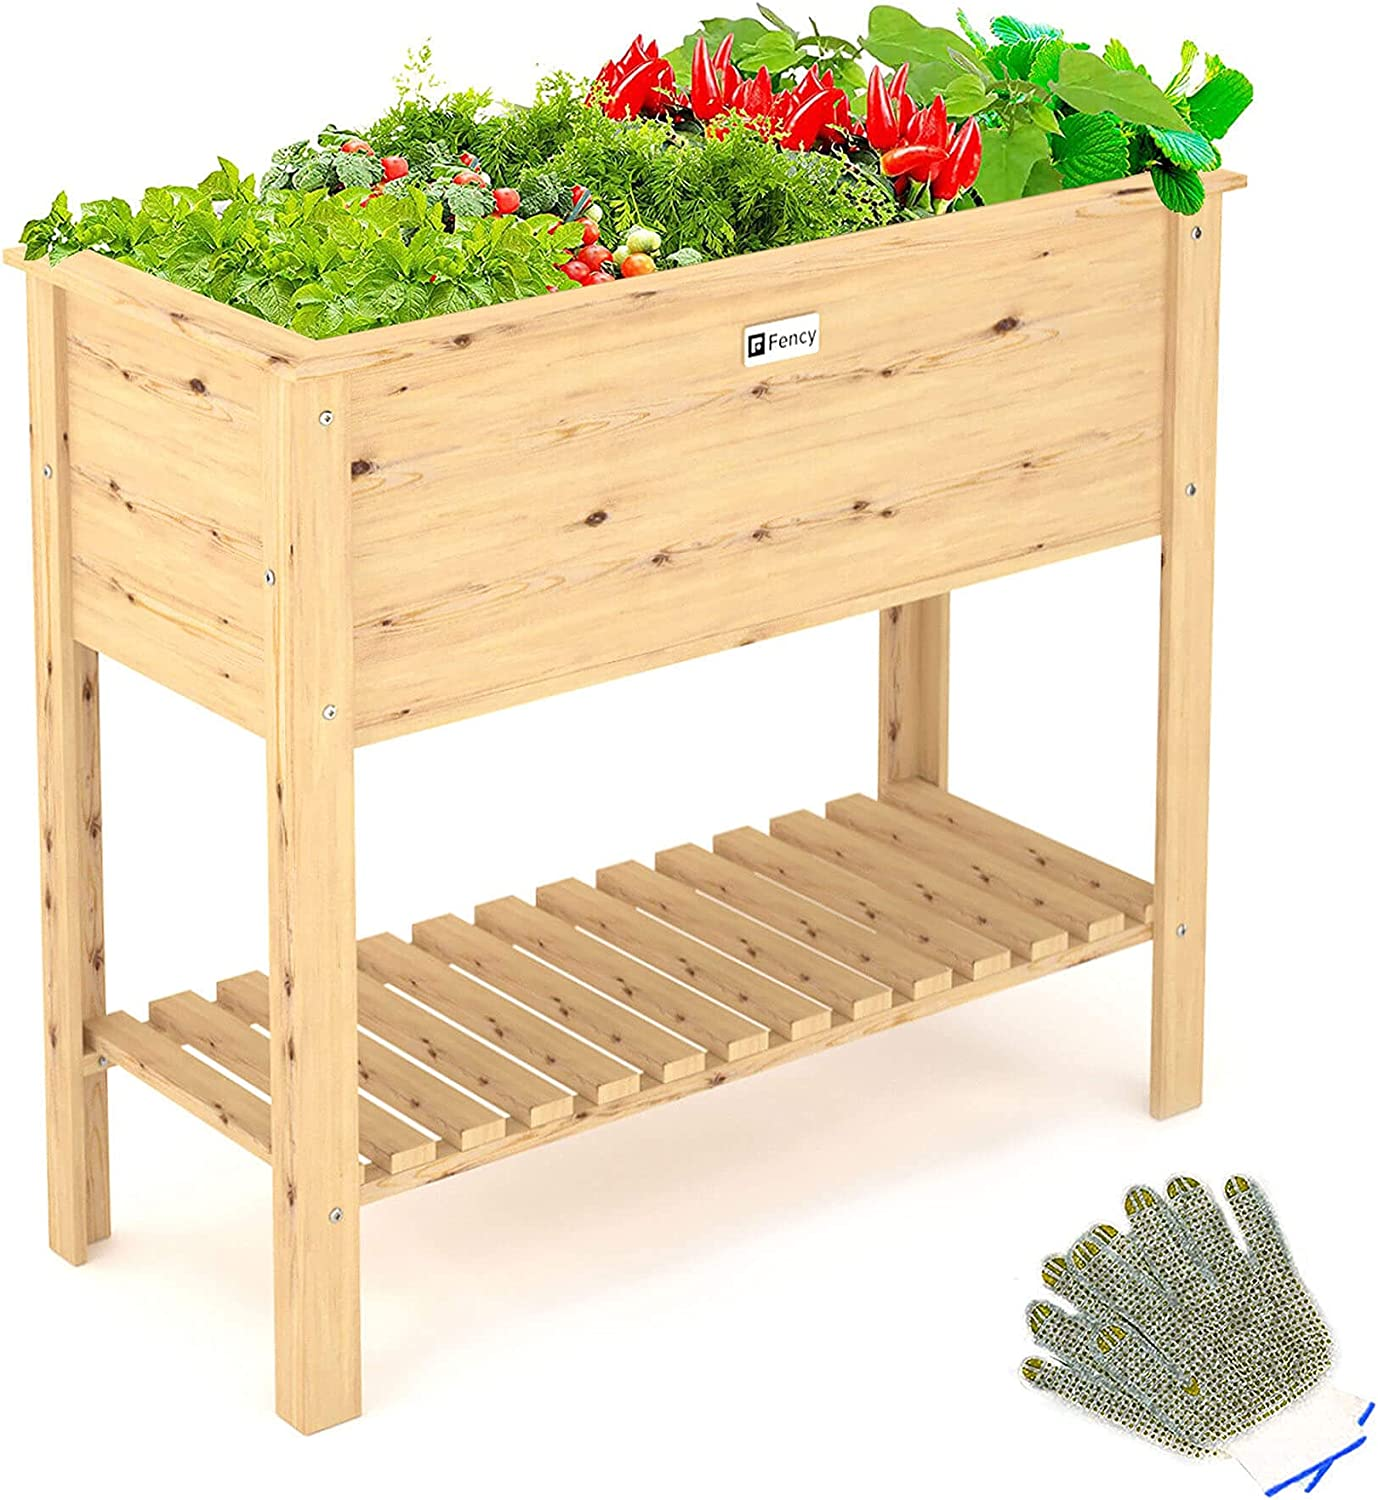 Elevens Raised Garden Bed Elevated Planter Box Outdoor with Legs for Flower/Herb/Vegetables, Growing Bed for Patio/Backyard/Balcony/Outdoor/ Indoor (36x16x30)